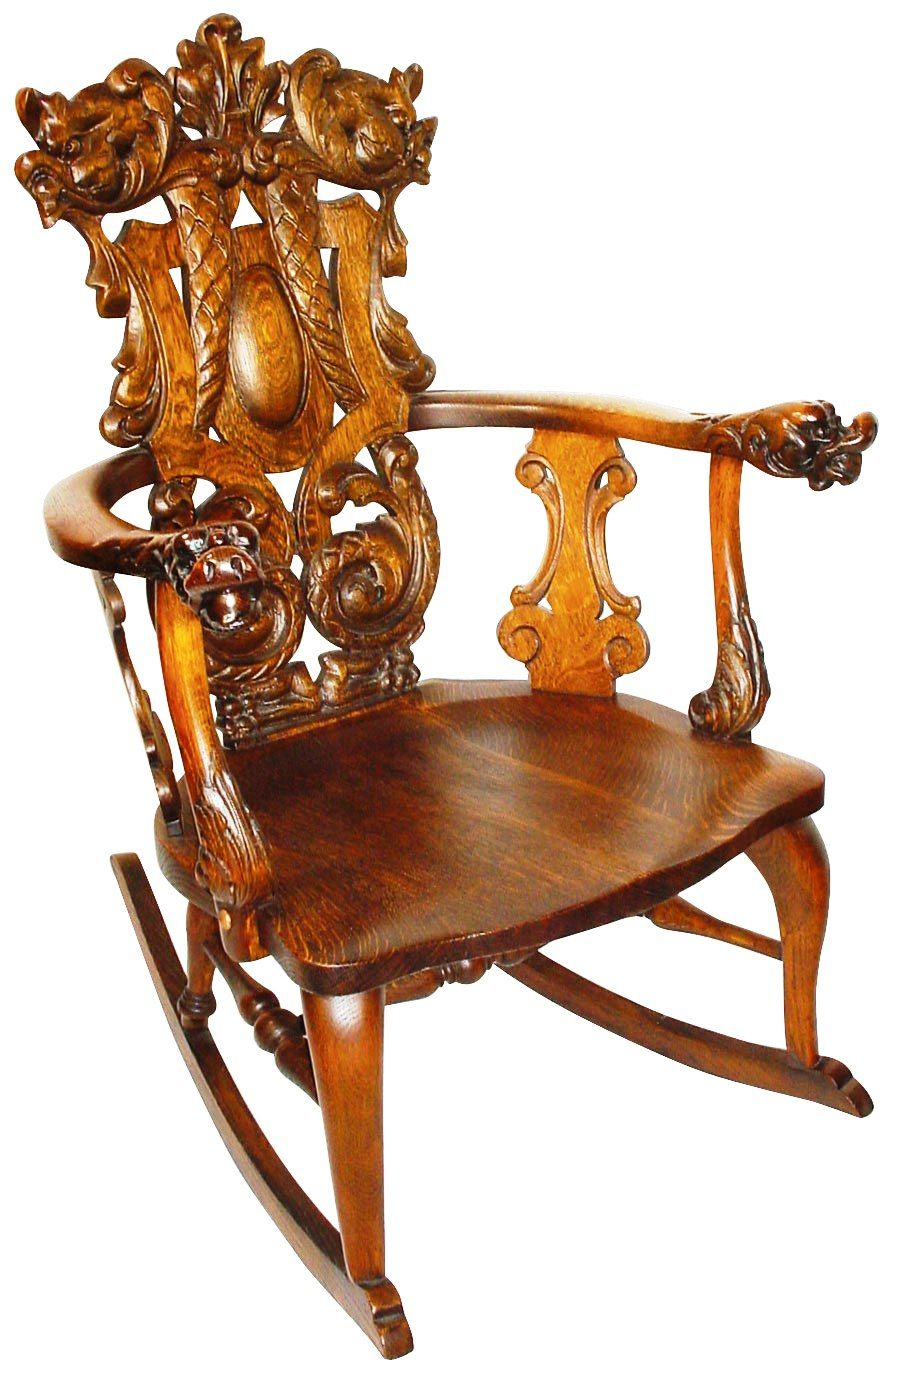 This Ornately Carved Rocker Is A Stickley But Not Gustav Stickley S Work It Was Made By